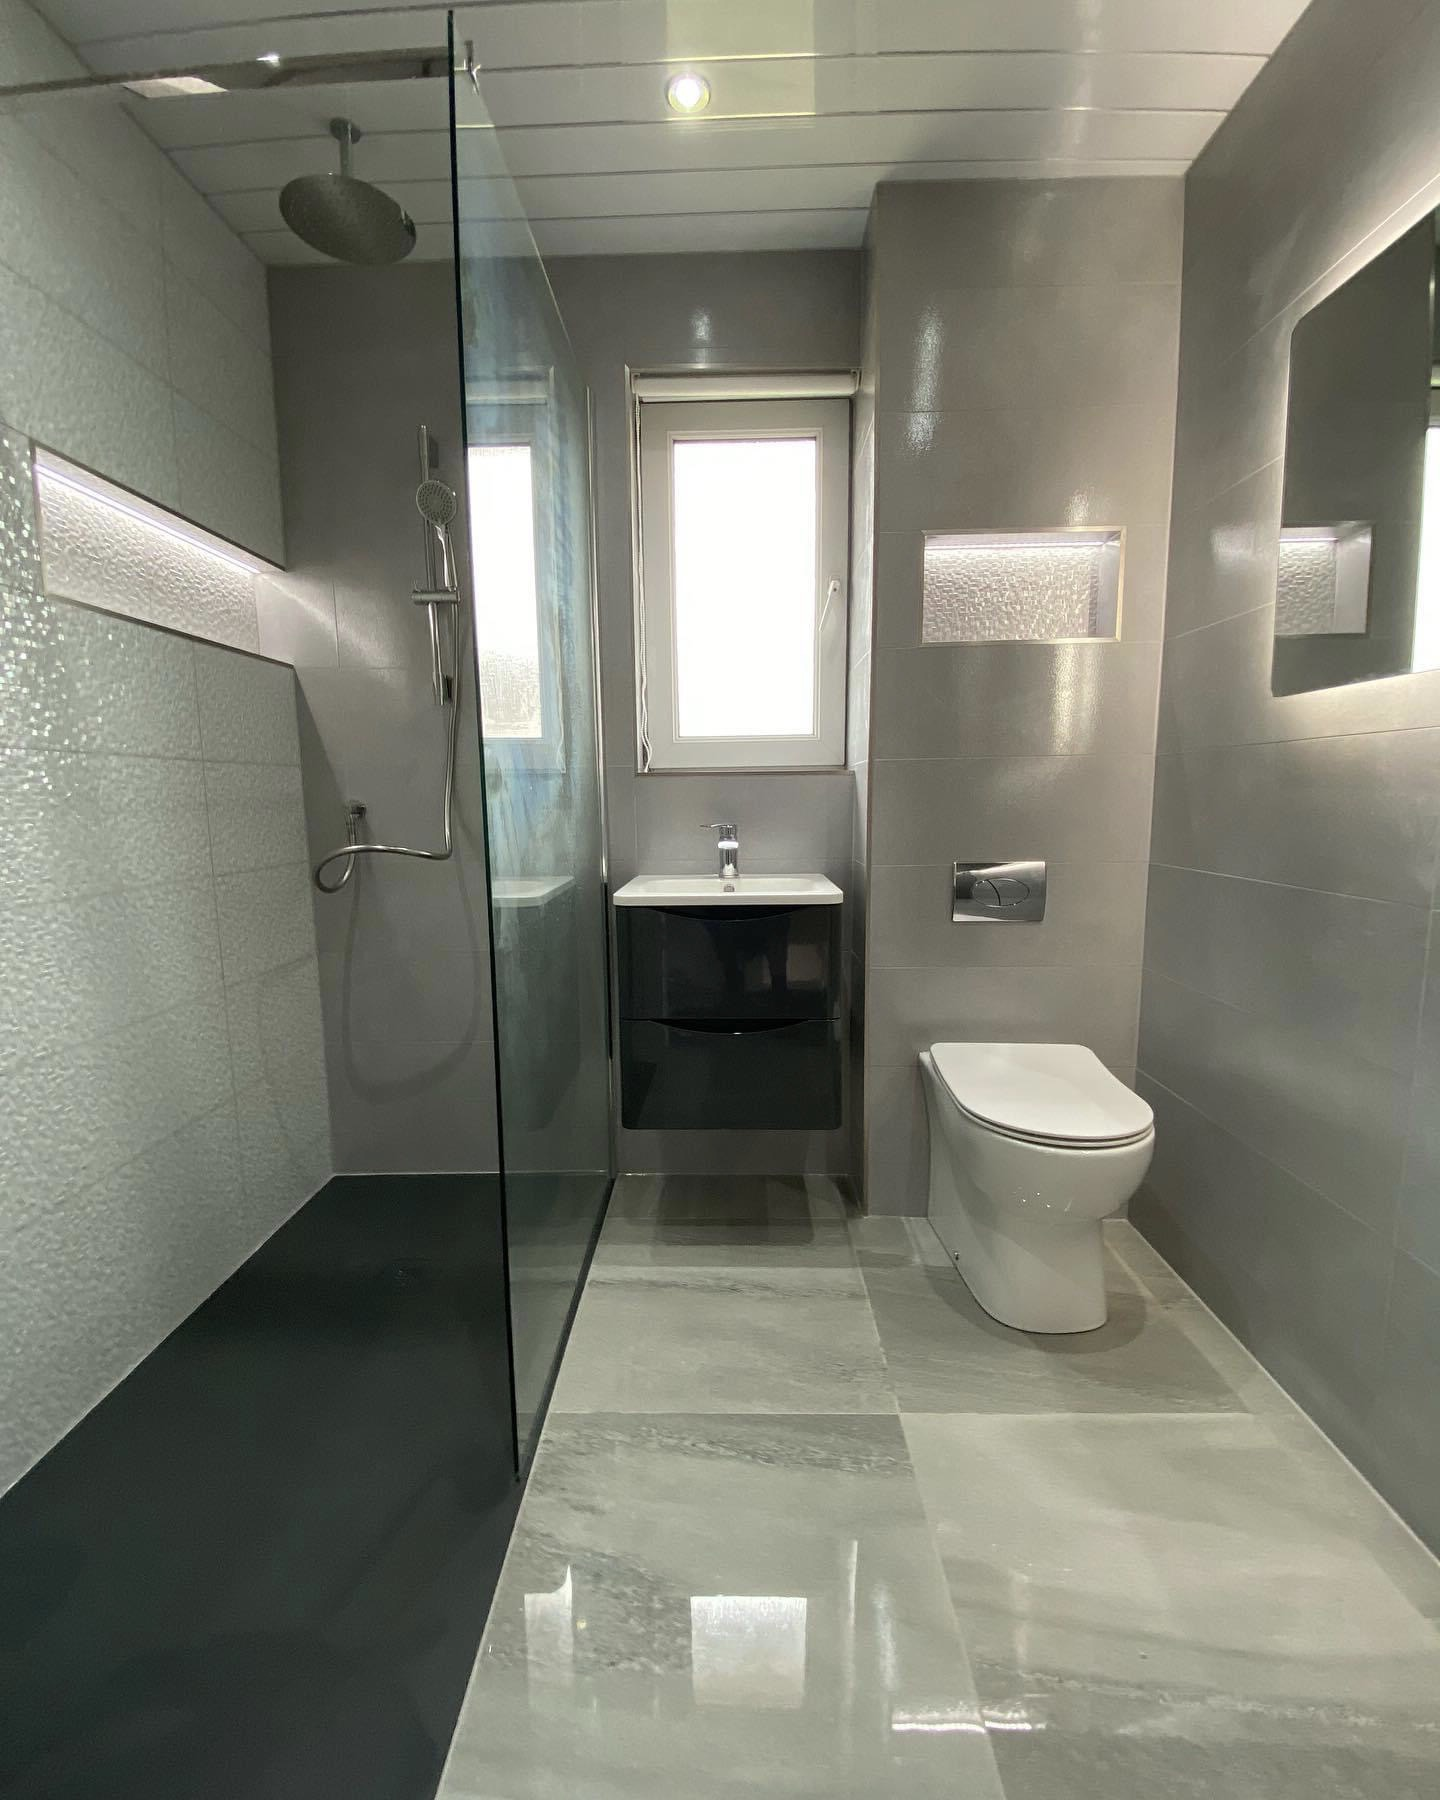 Newly renovated bathroom toilet